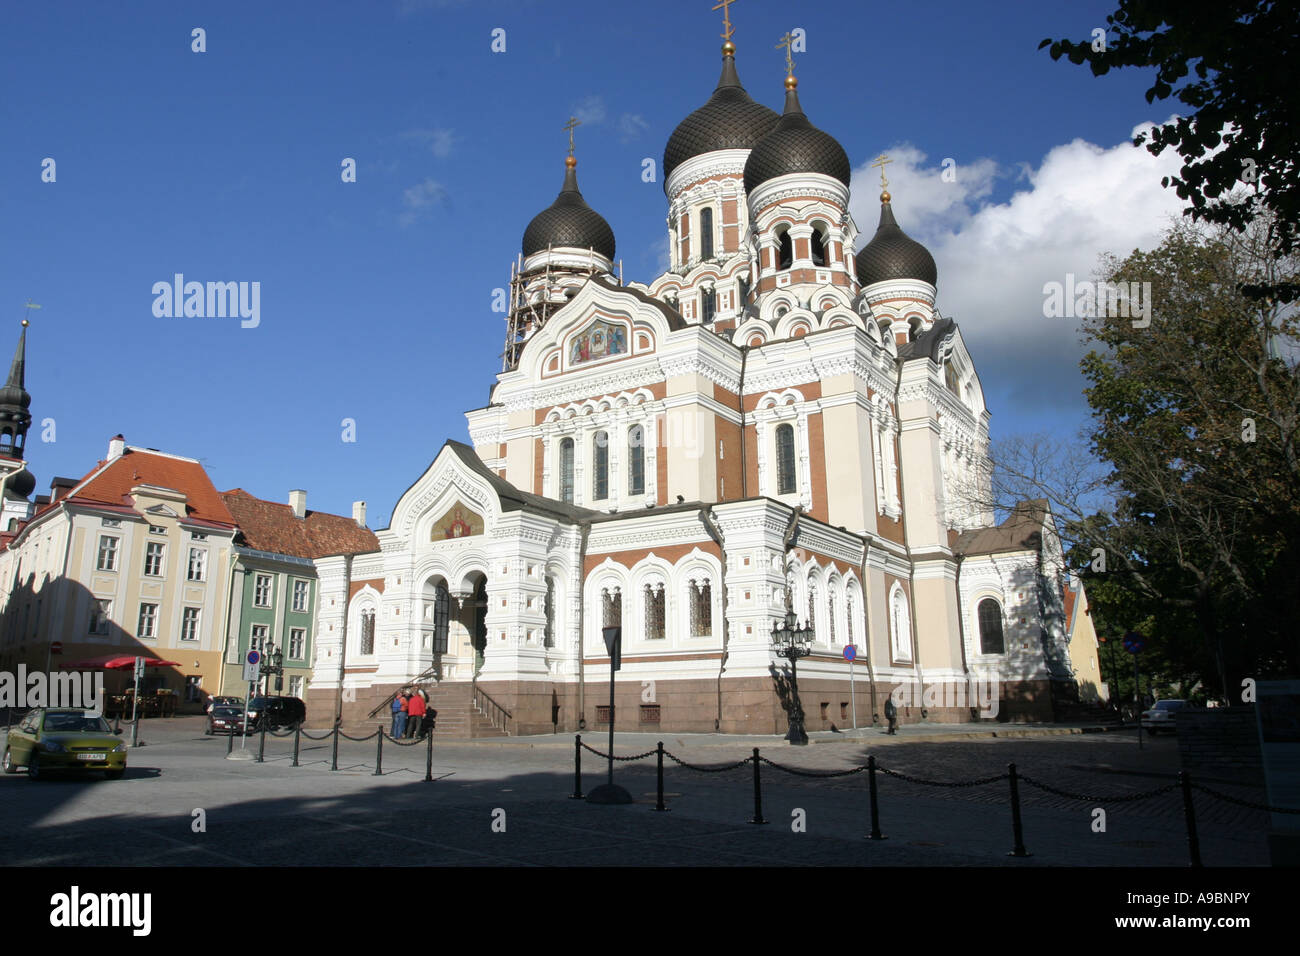 L'ESTONIE - la cathédrale Alexandre Nevski dans la capitale Tallin Photo Stock